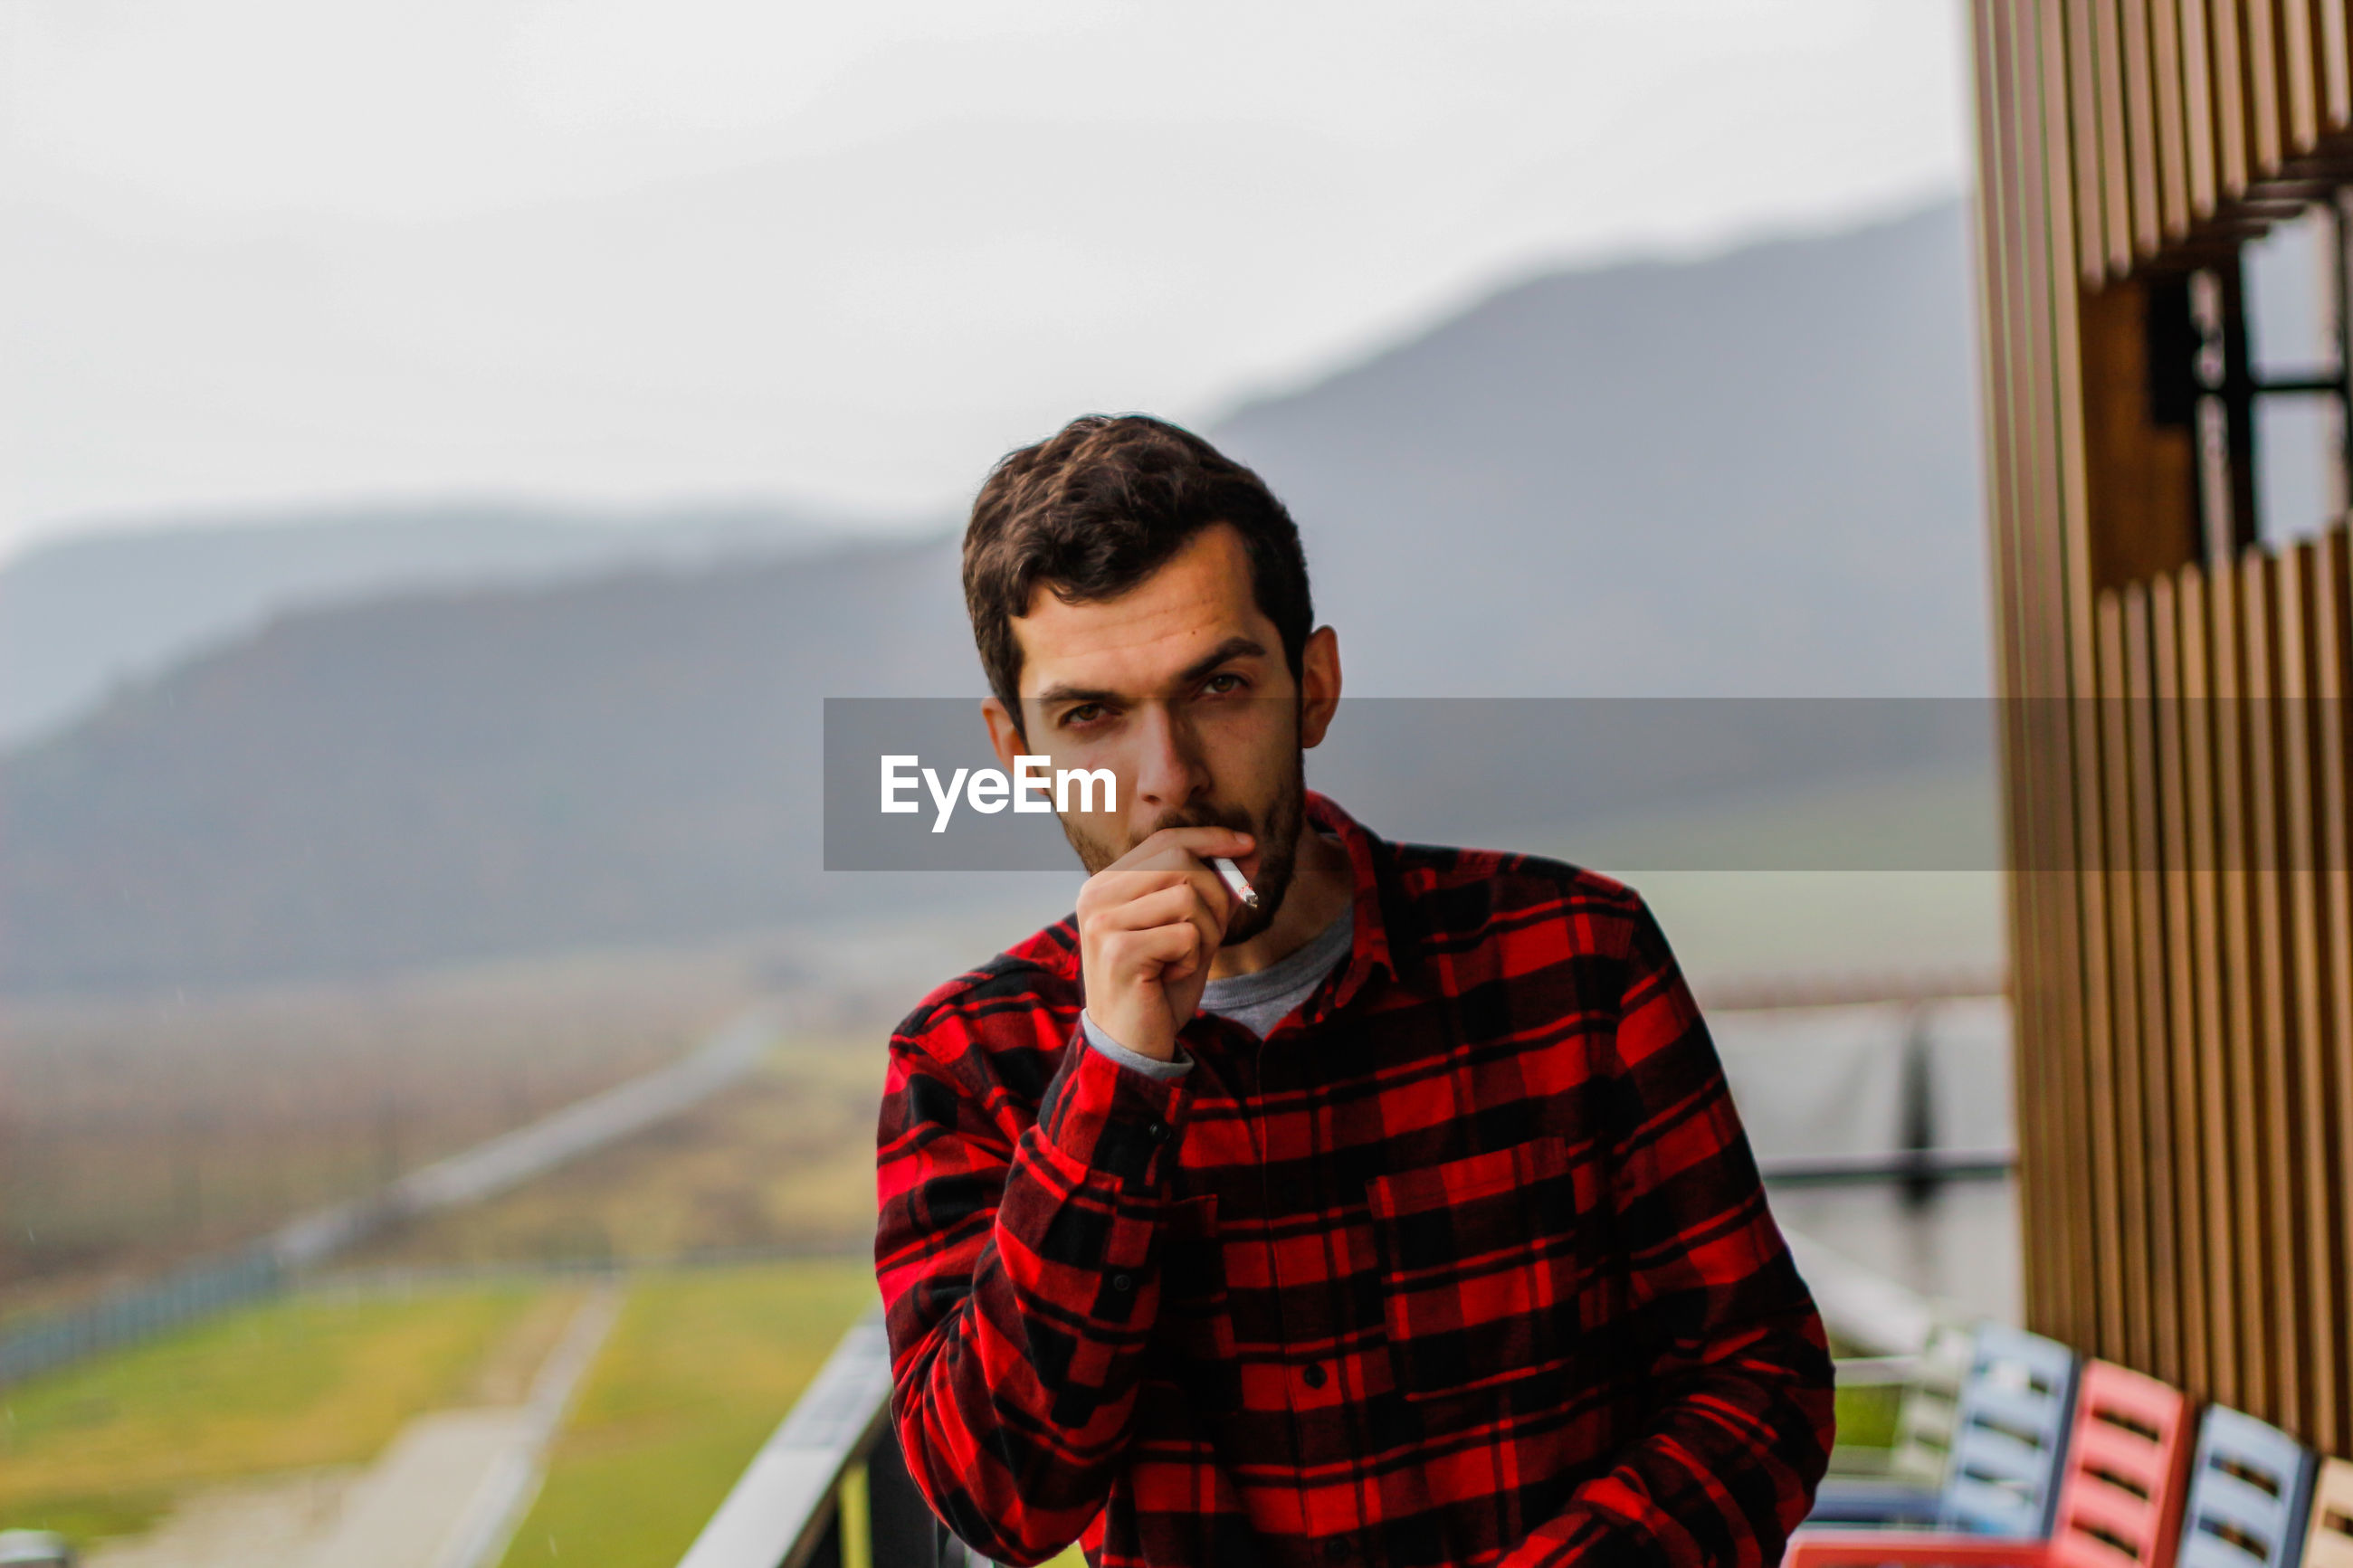 Portrait of handsome young man smoking cigarette against clear sky